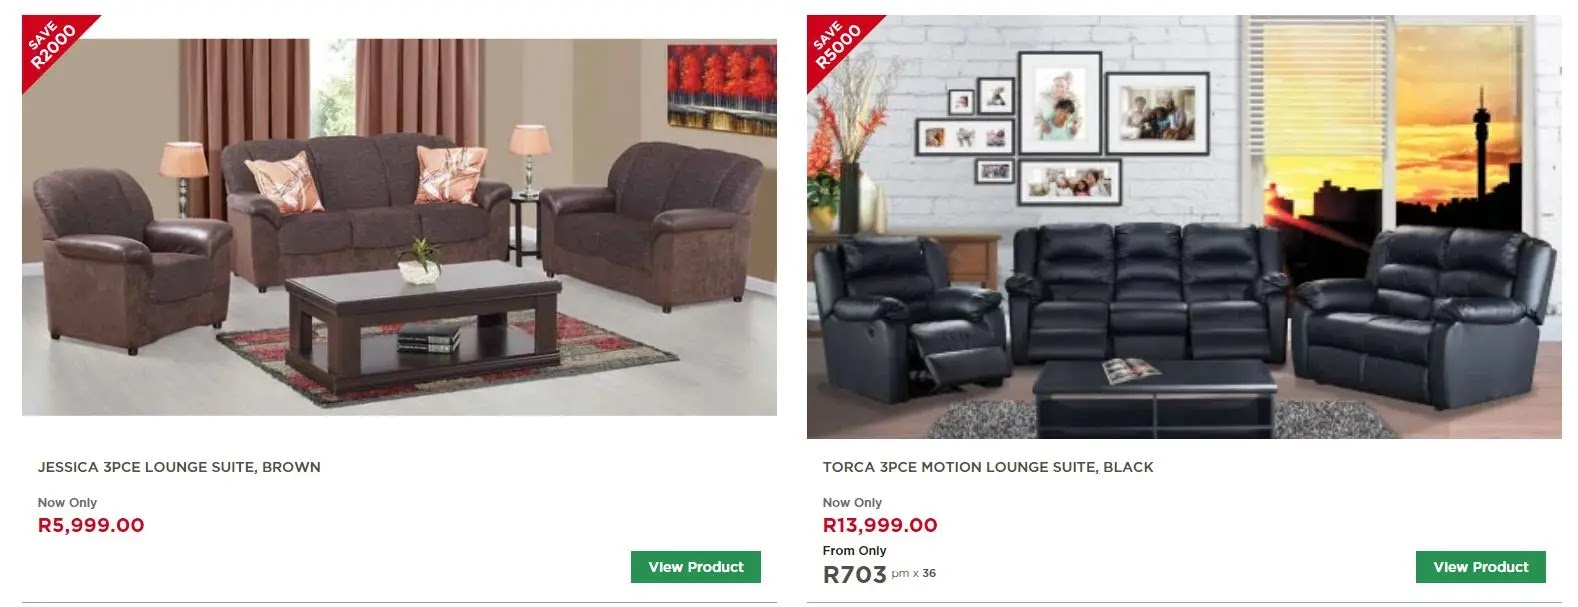 Black Friday 2019 Furniture Deals Page 4